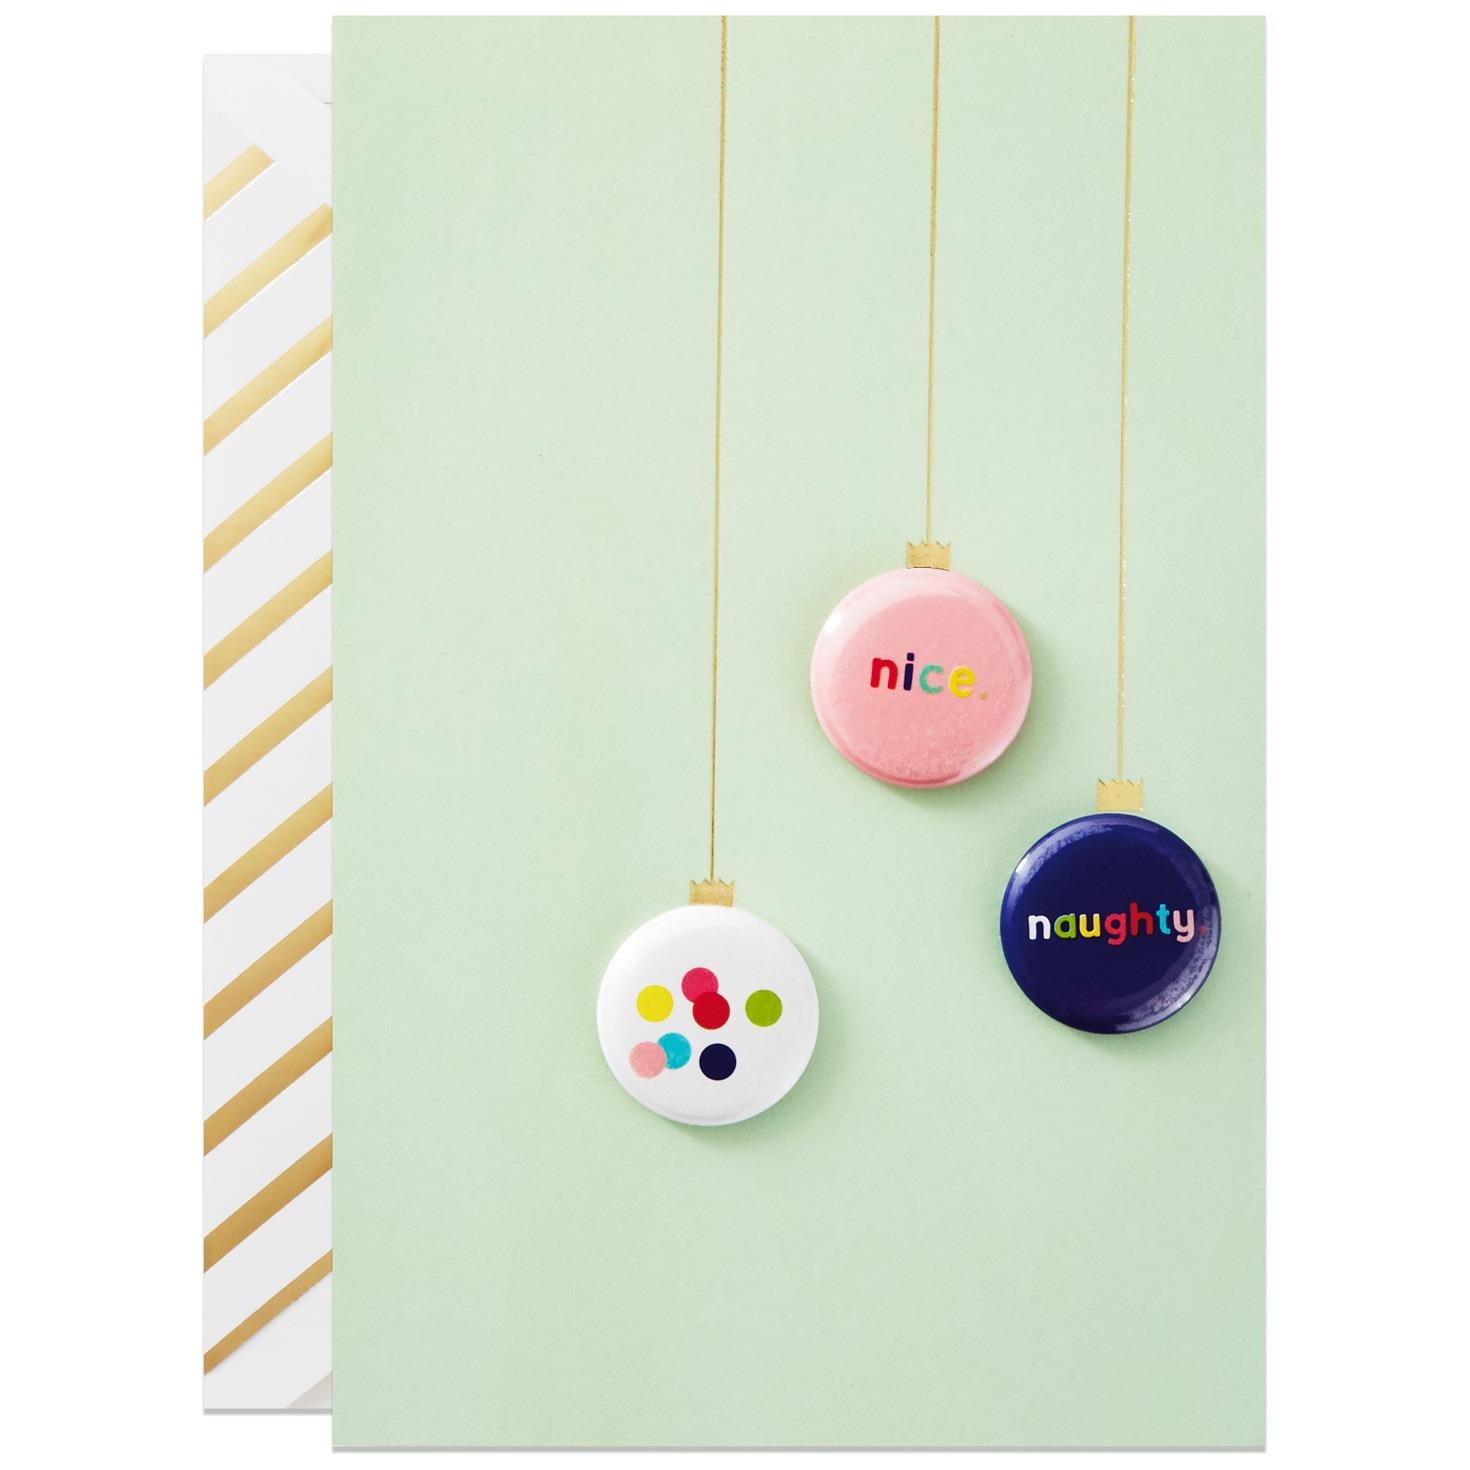 Nice and Naughty Christmas Card With Wearable Pins Greeting